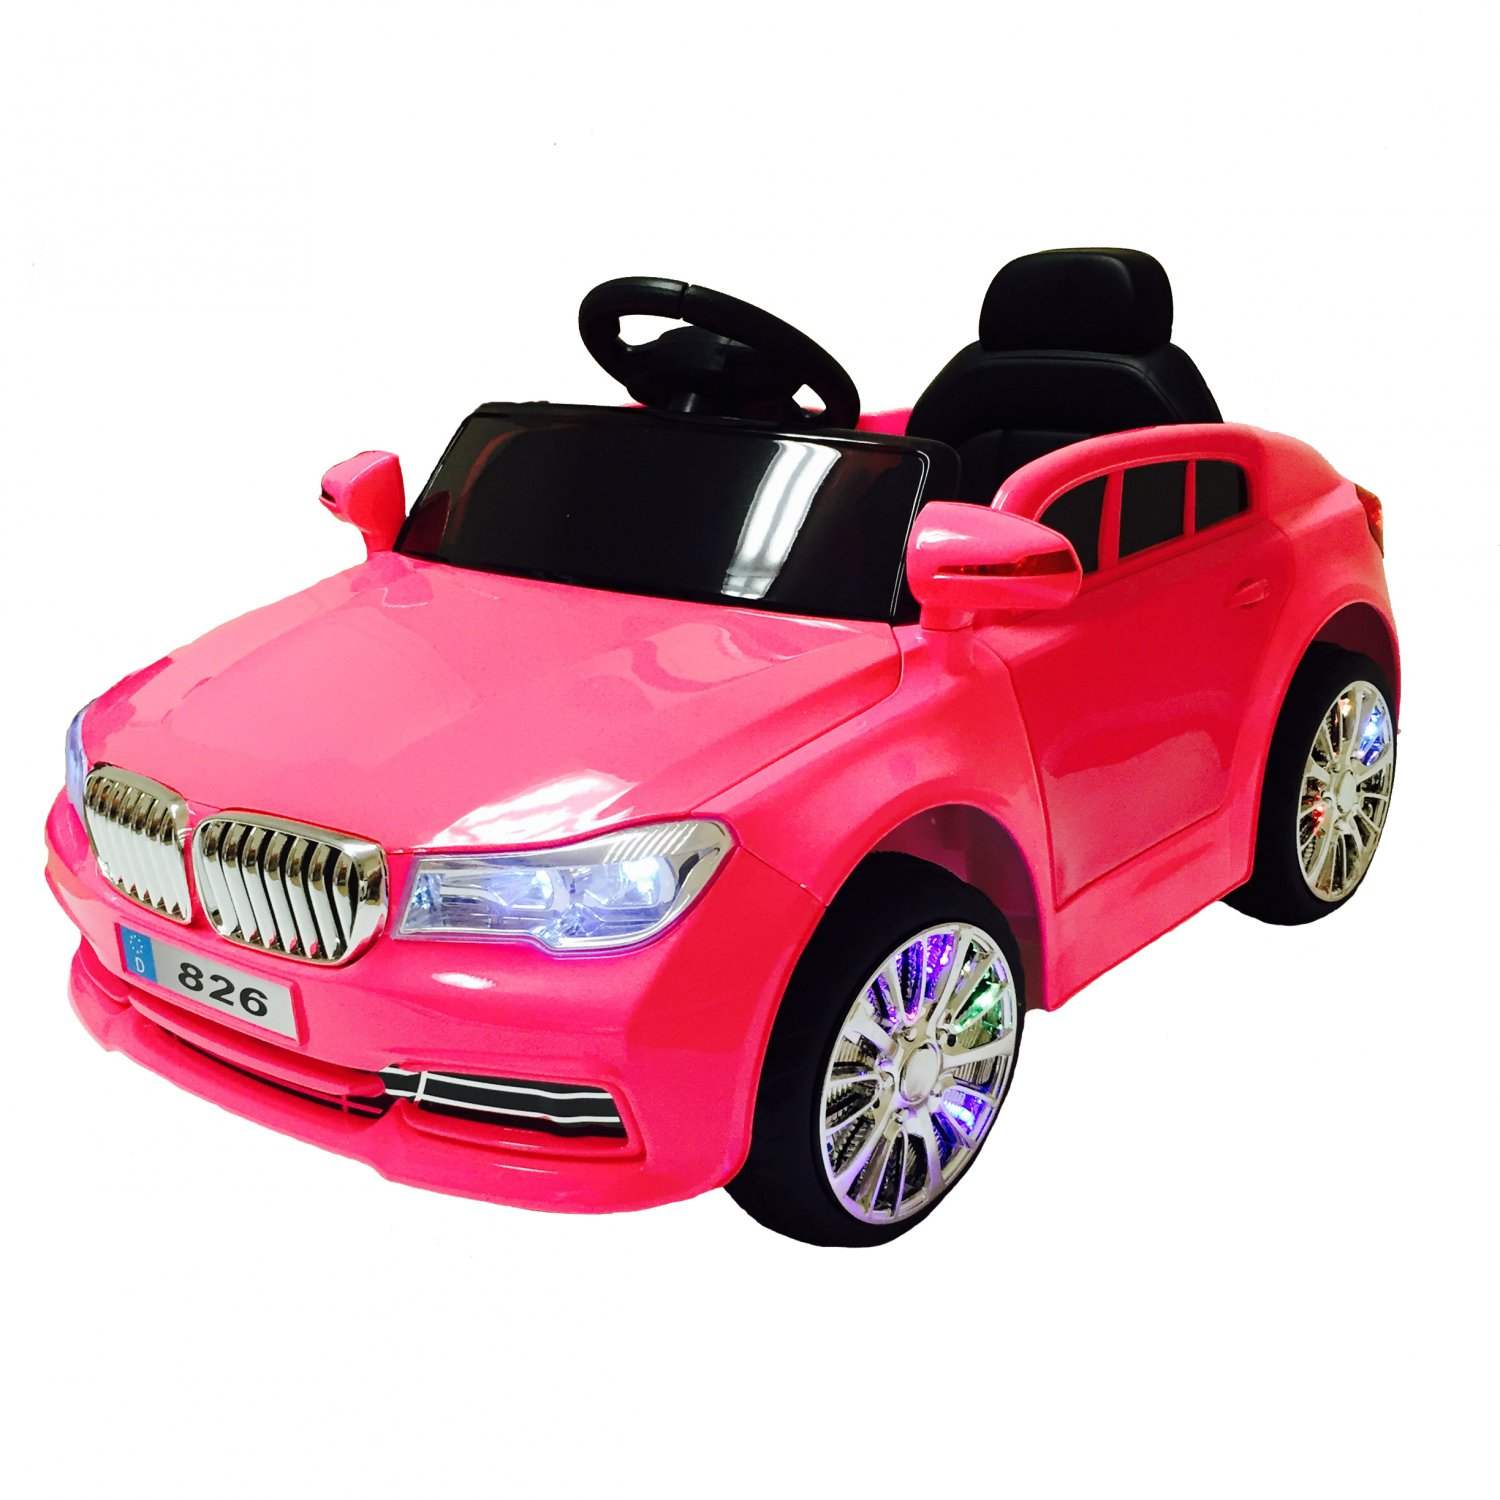 Electric Ride On Car For Kid With Remote Control   Pink